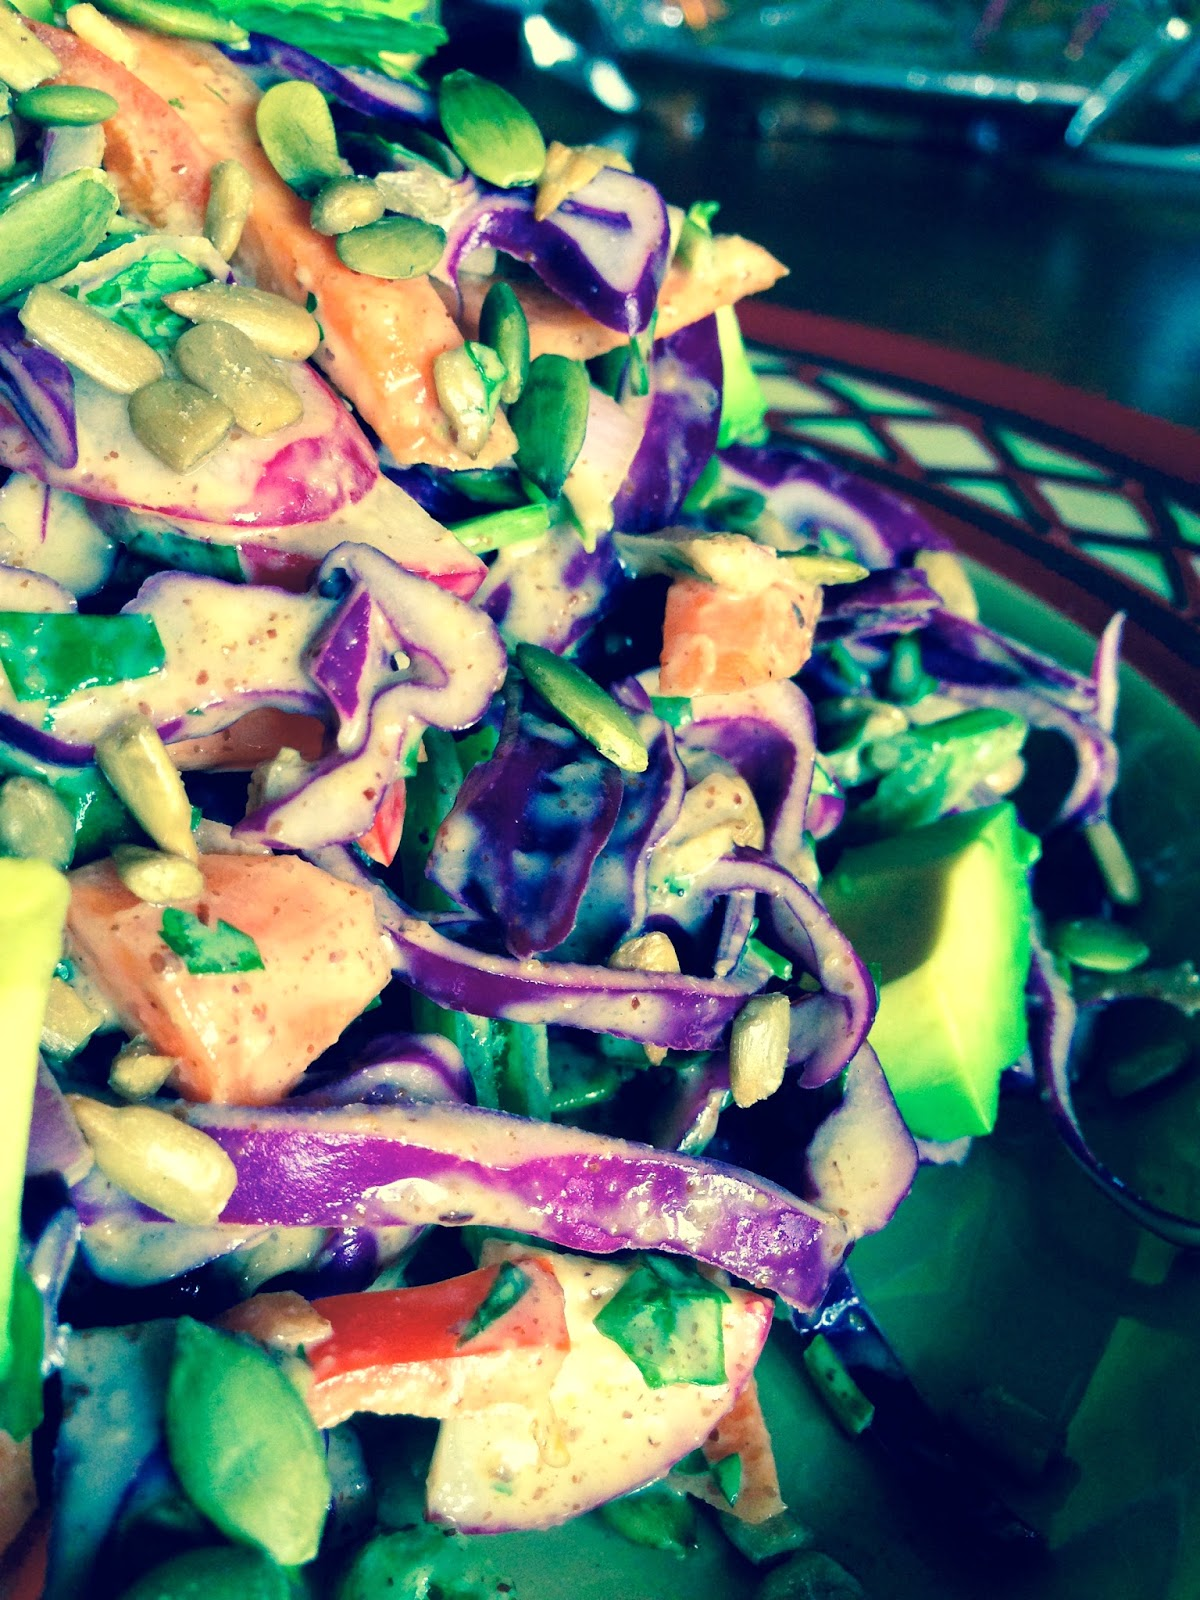 Kitchen Sink Salad by BeautyBeyondBones #glutenfree #grainfree #vegan #paleo #vegetarian #food #dinner #edrecovery